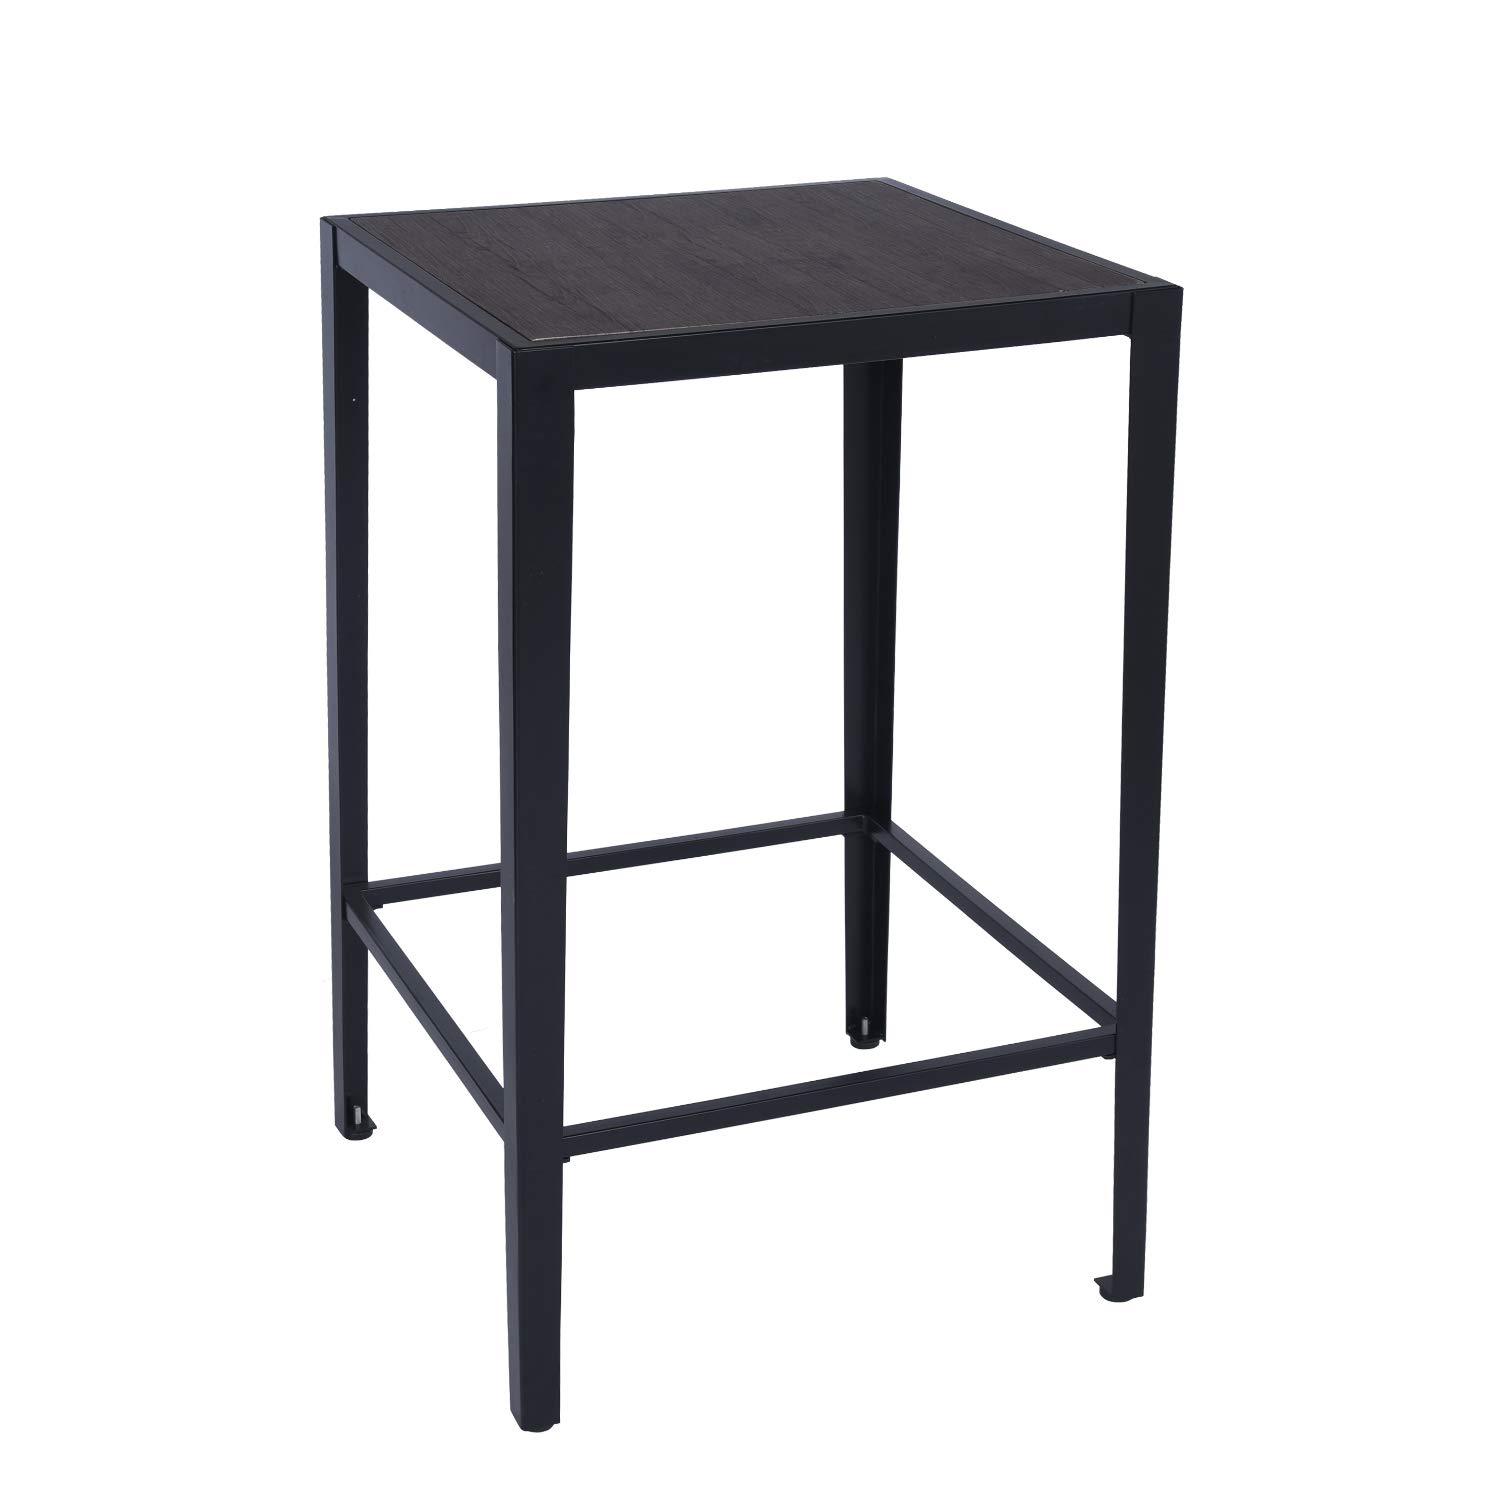 GreenForest Bar Table Modern 38.4-Inch Height Square High Top Pub Dining Table with Metal Legs, Walnut by GreenForest